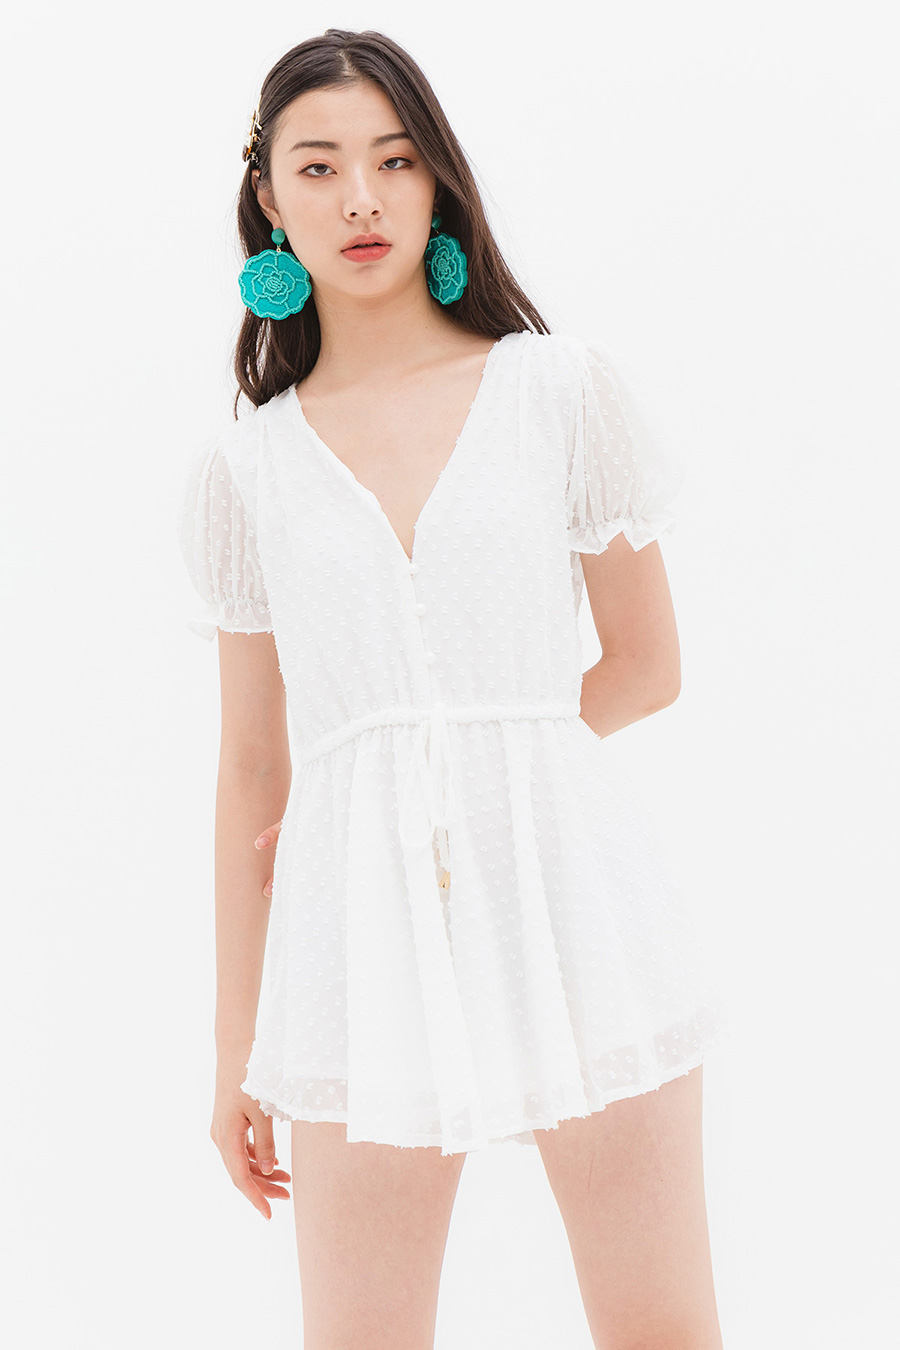 *RESTOCKED* WALKMAN PLAYSUIT - SALT LAKE